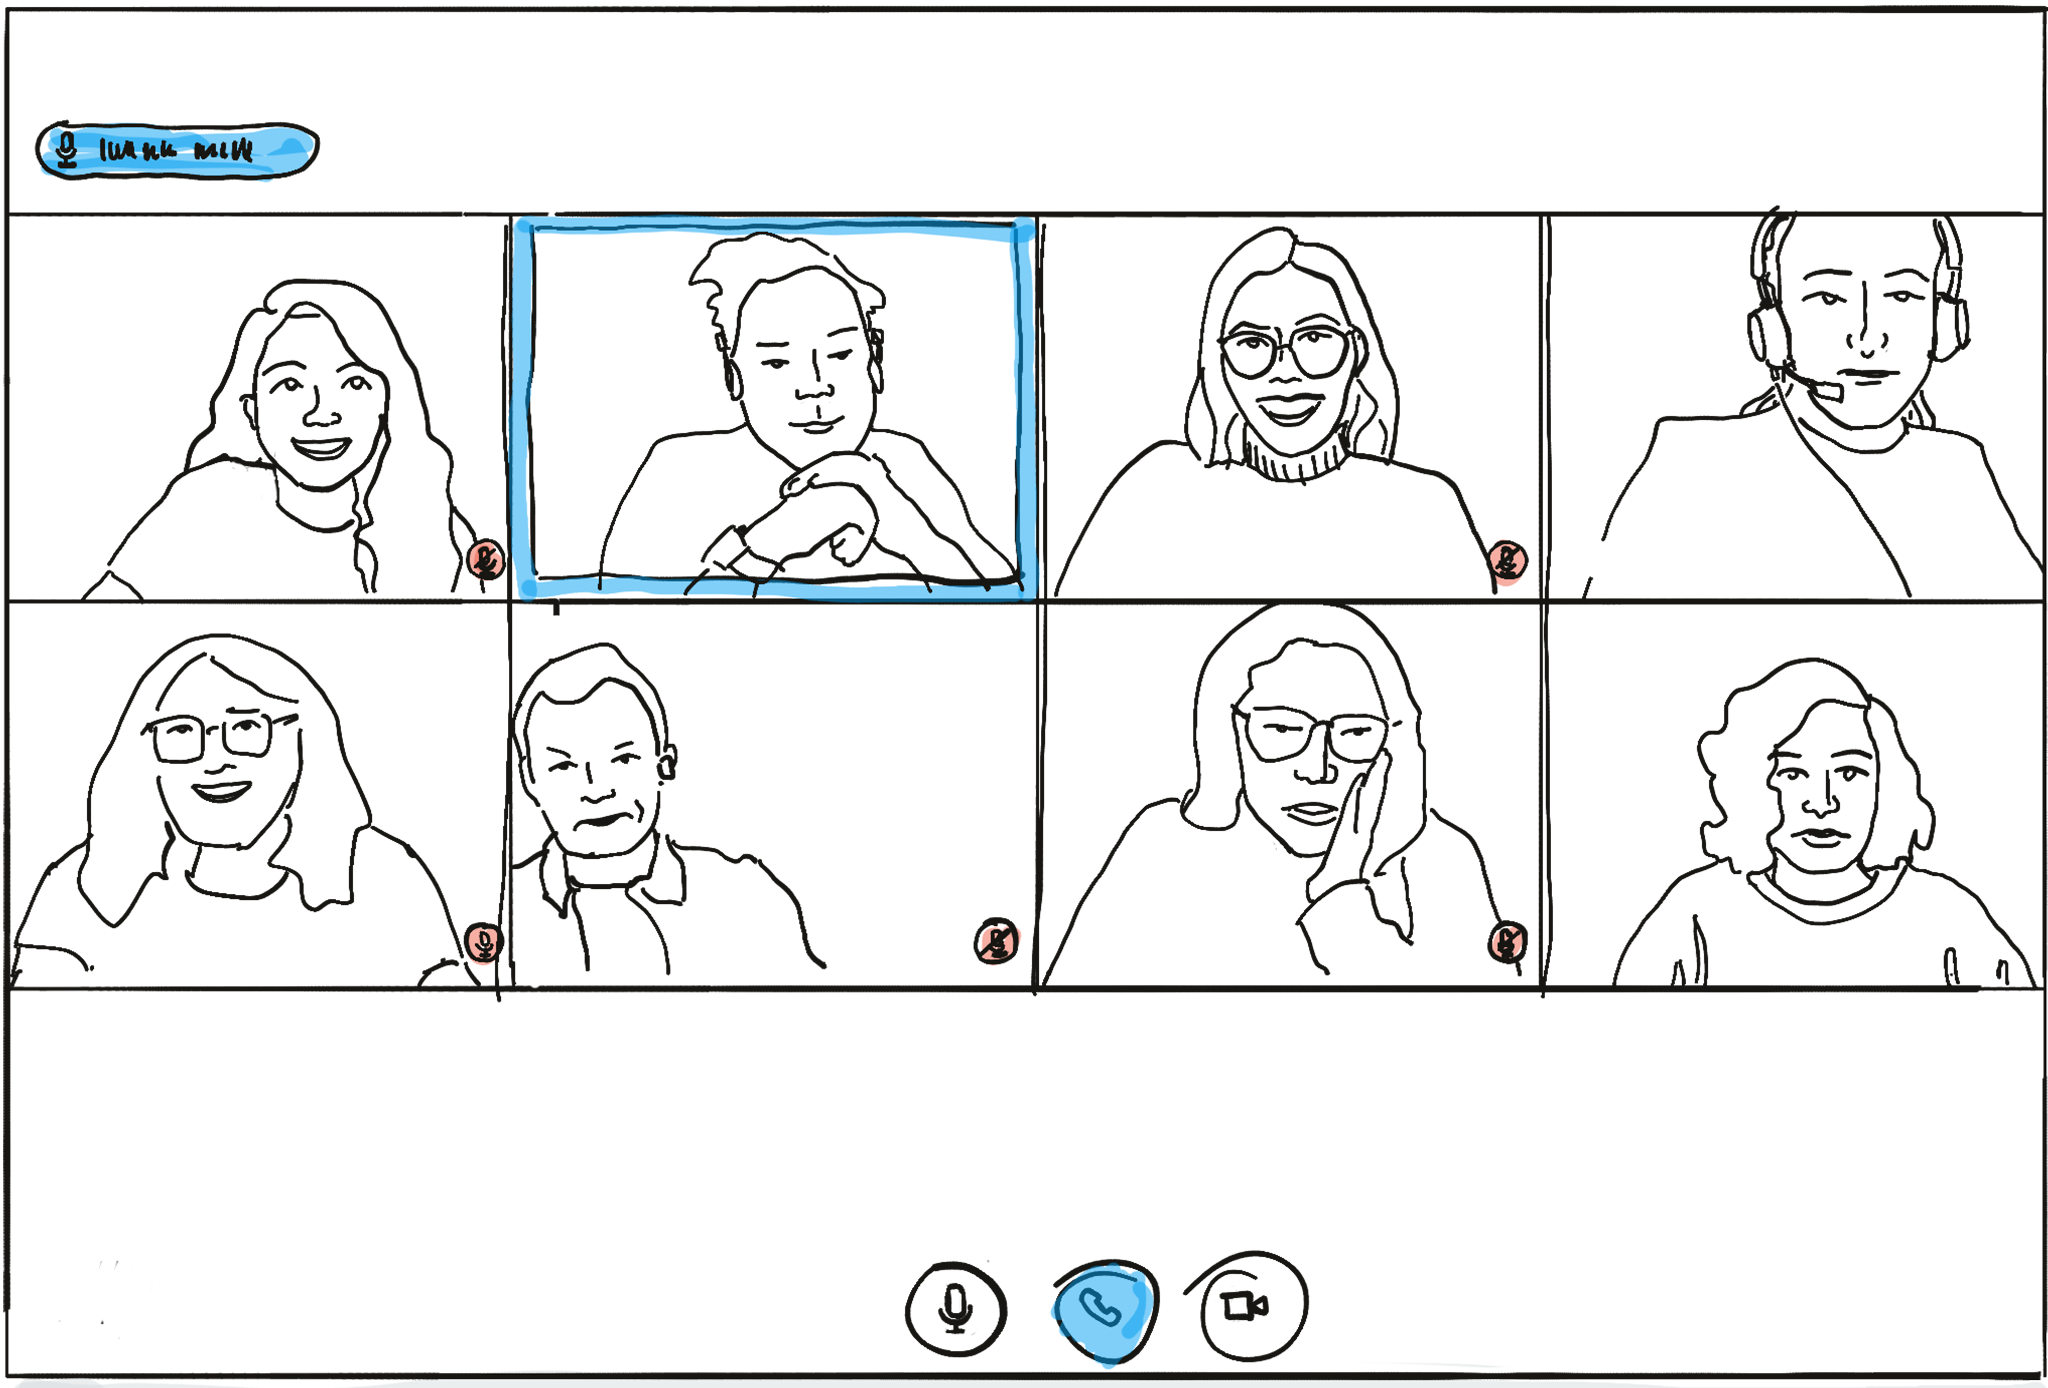 Typical tiled representation in a video conference software (here: Big Blue Button)